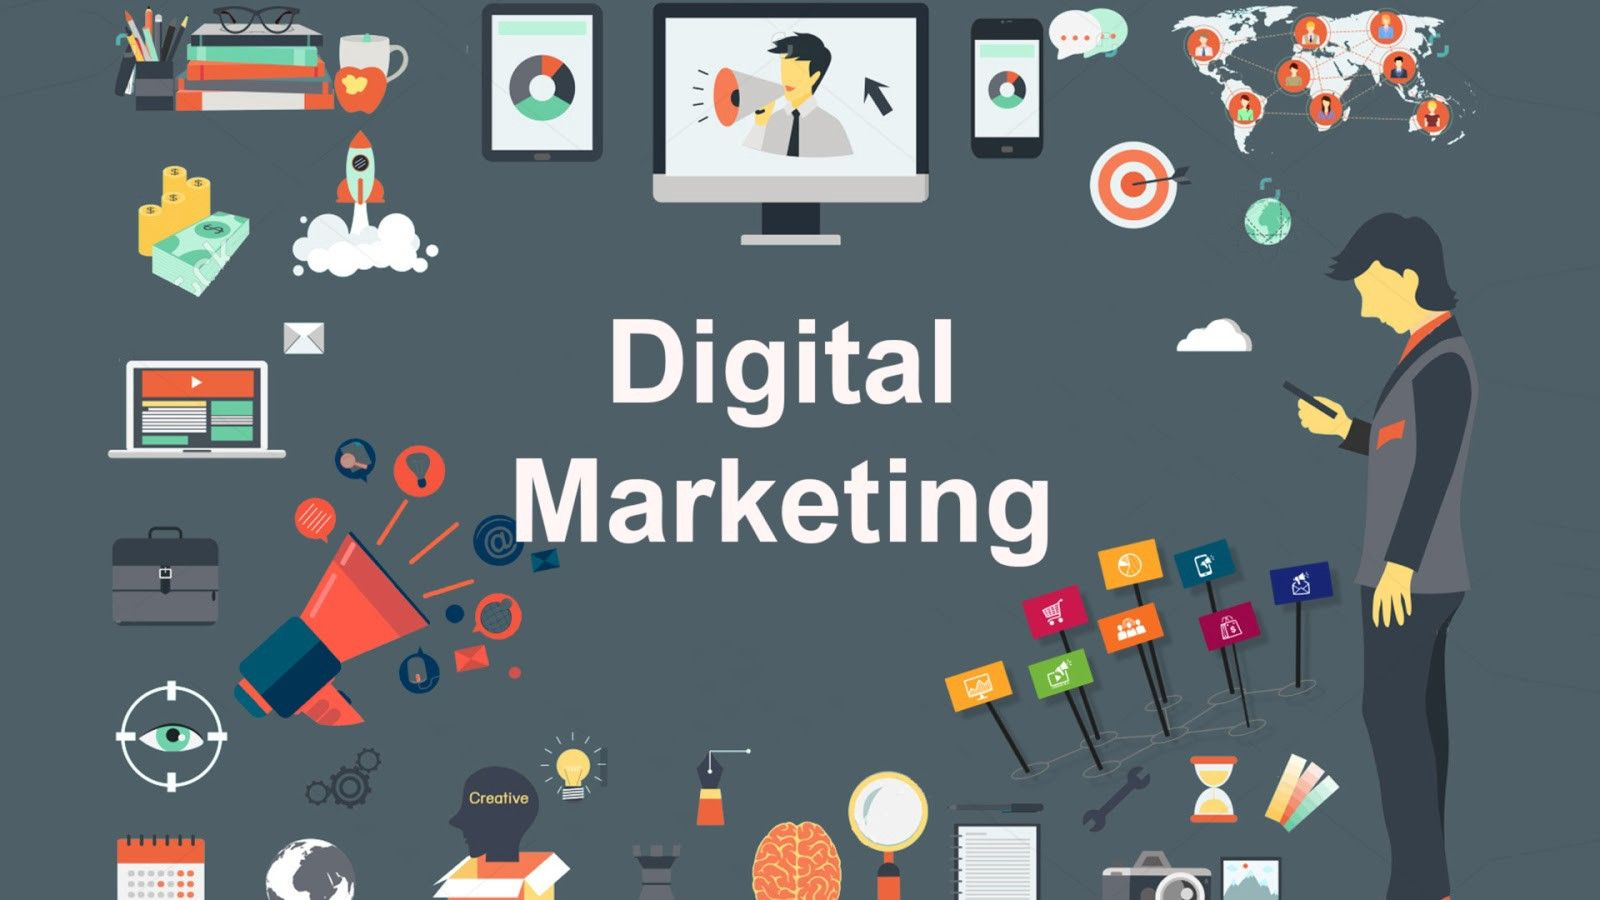 10 Best Digital Marketing Courses & Certifications - [2021 Edition]